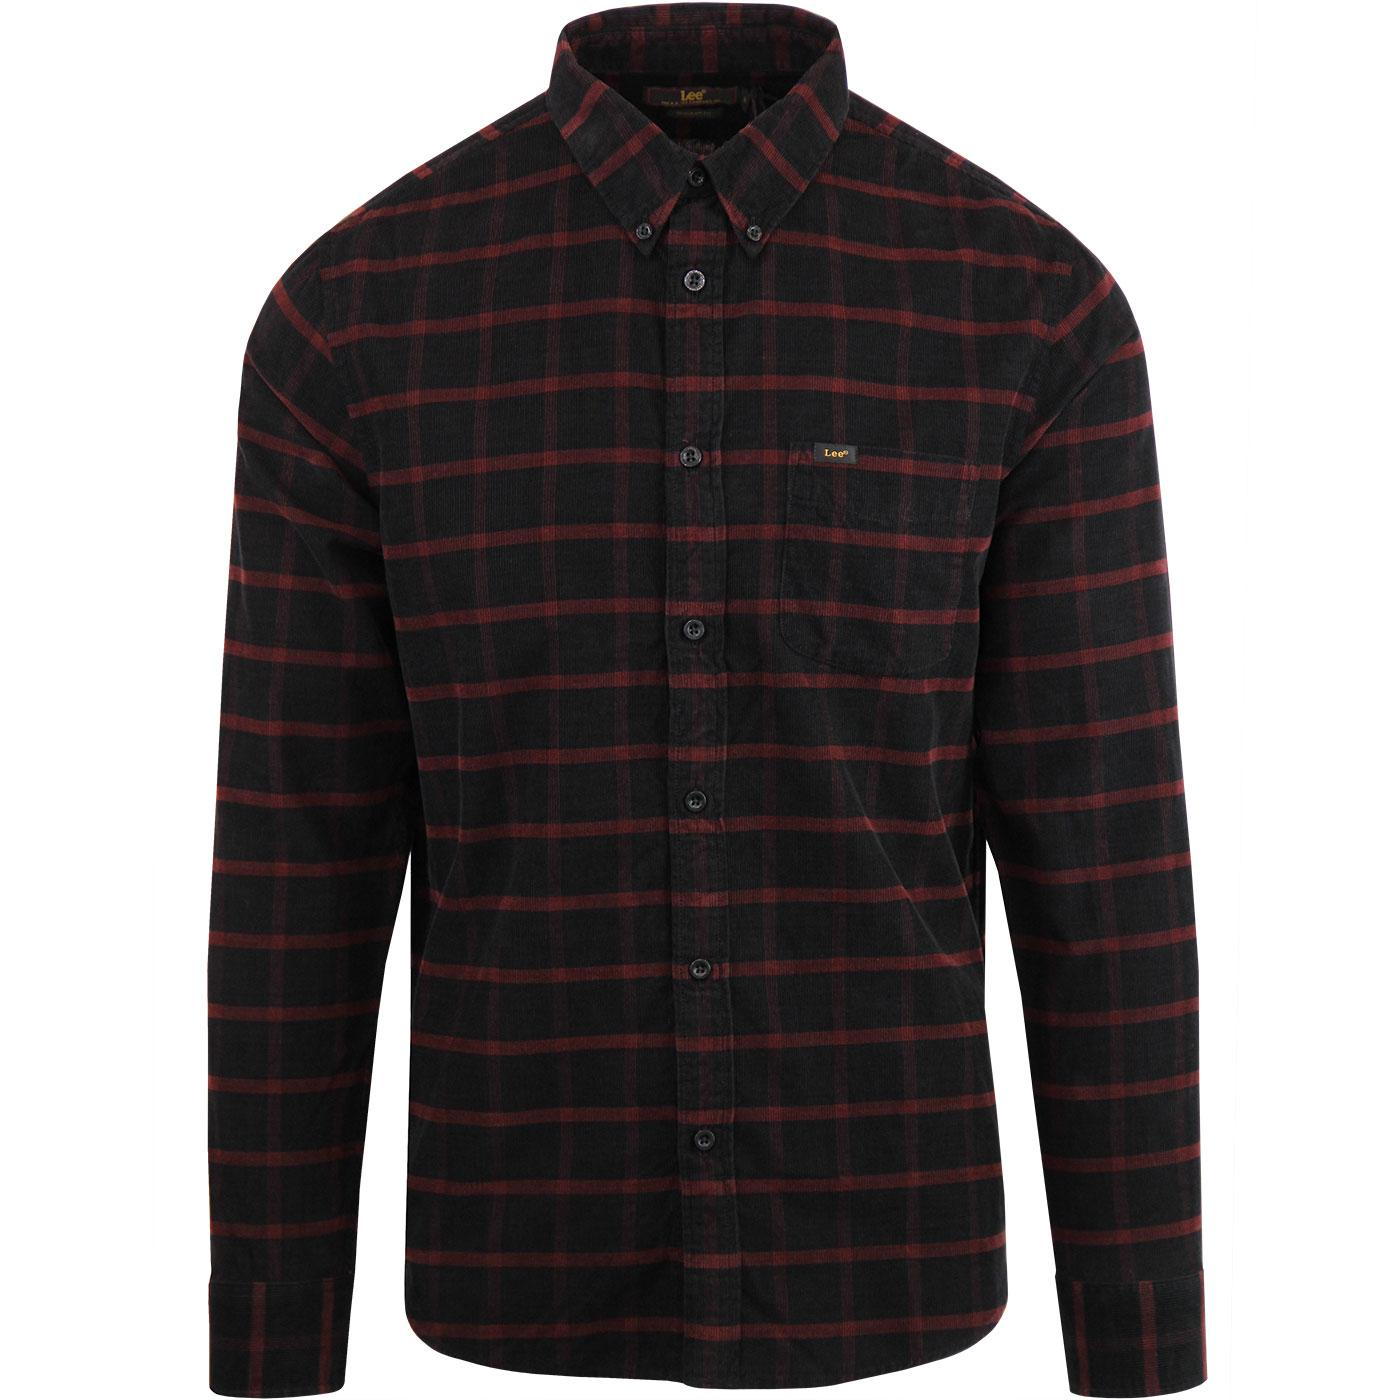 LEE JEANS 60's Mod Fine Cord Check Shirt - Rhubarb